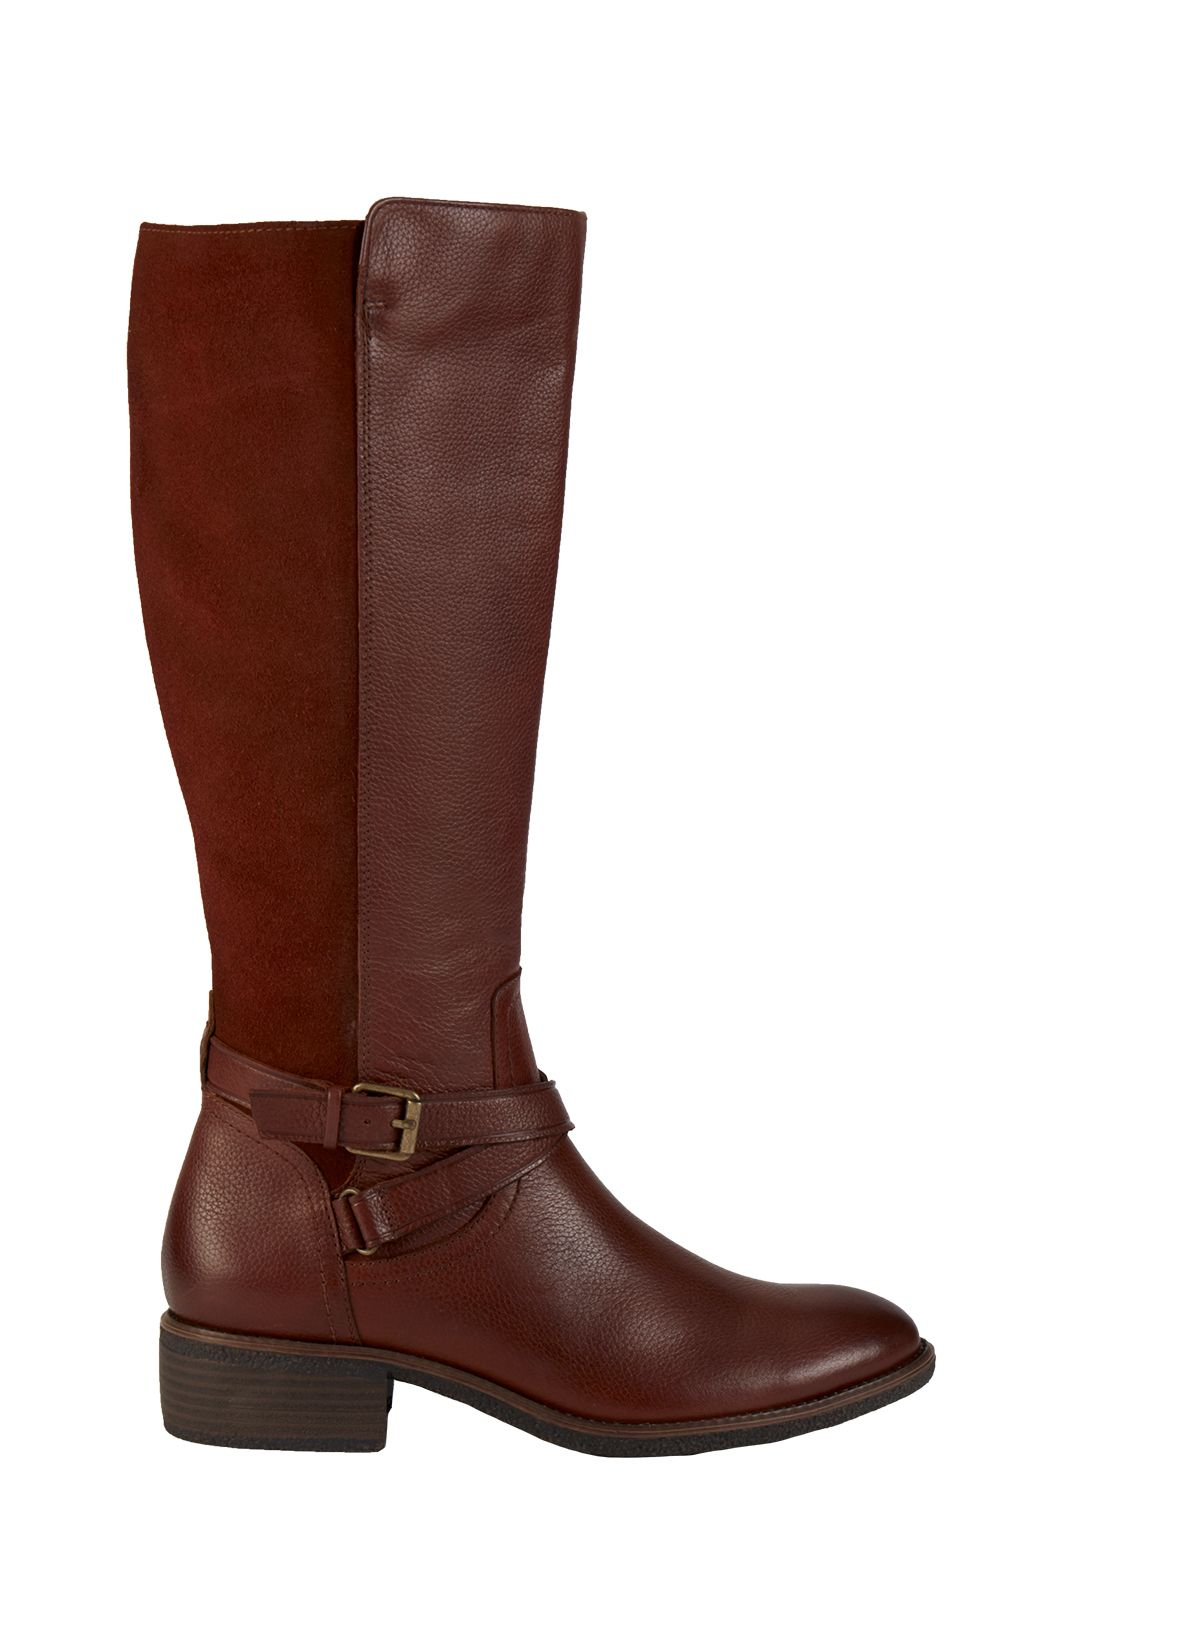 aaeced7d090 Online Exclusive Sole Comfort Brown Leather   Suede Riding Boots ...